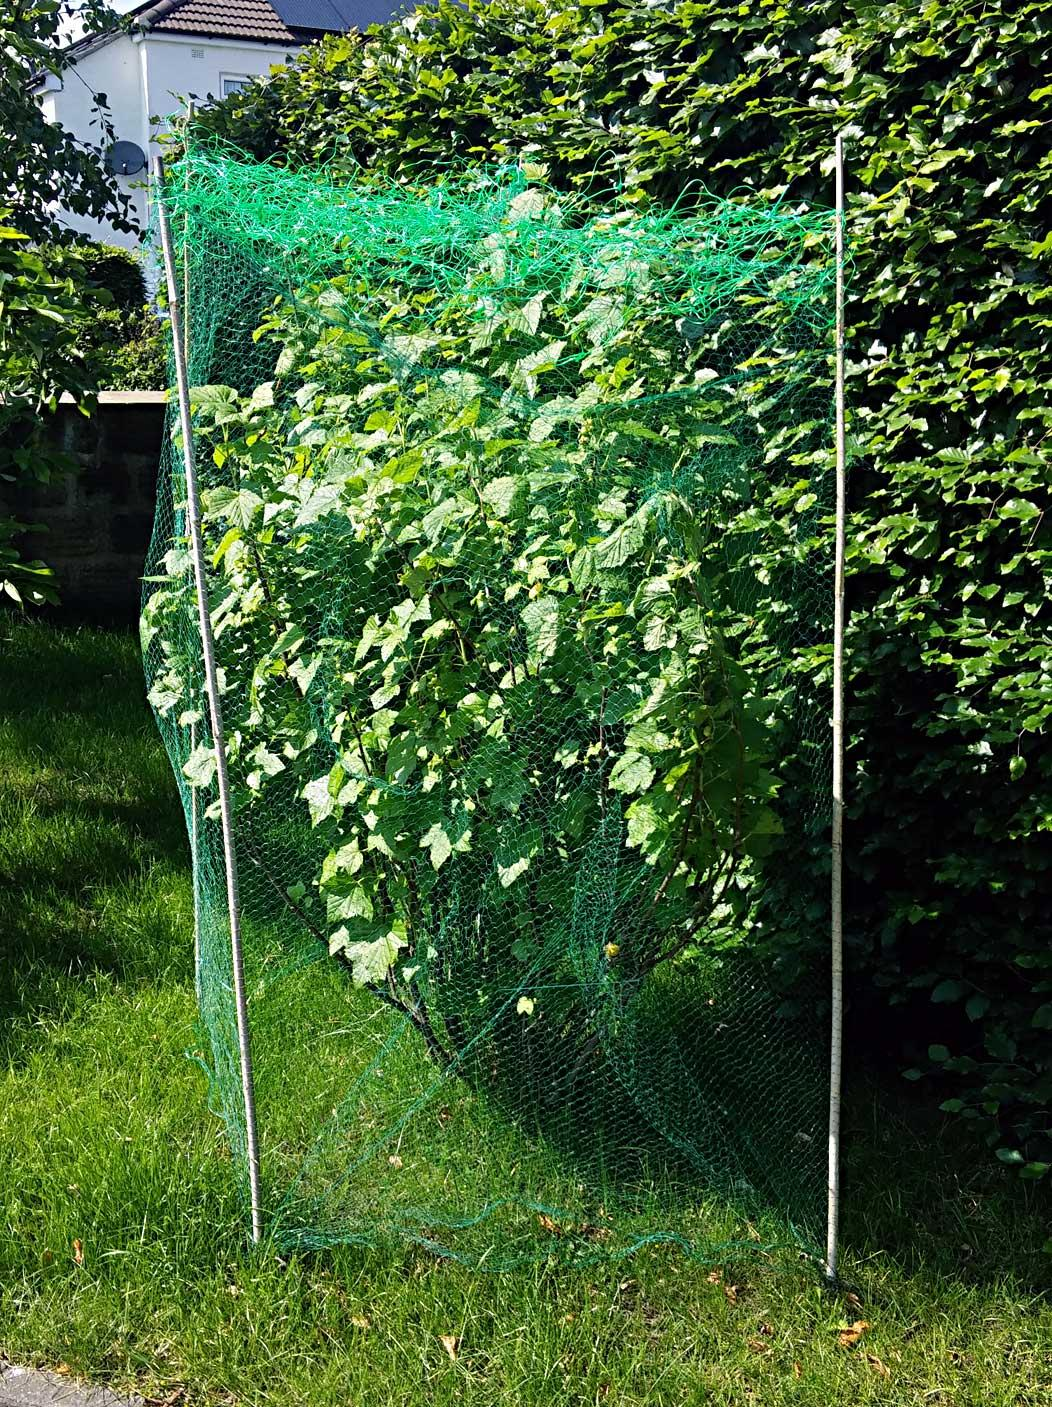 blackcurrant bush with netting